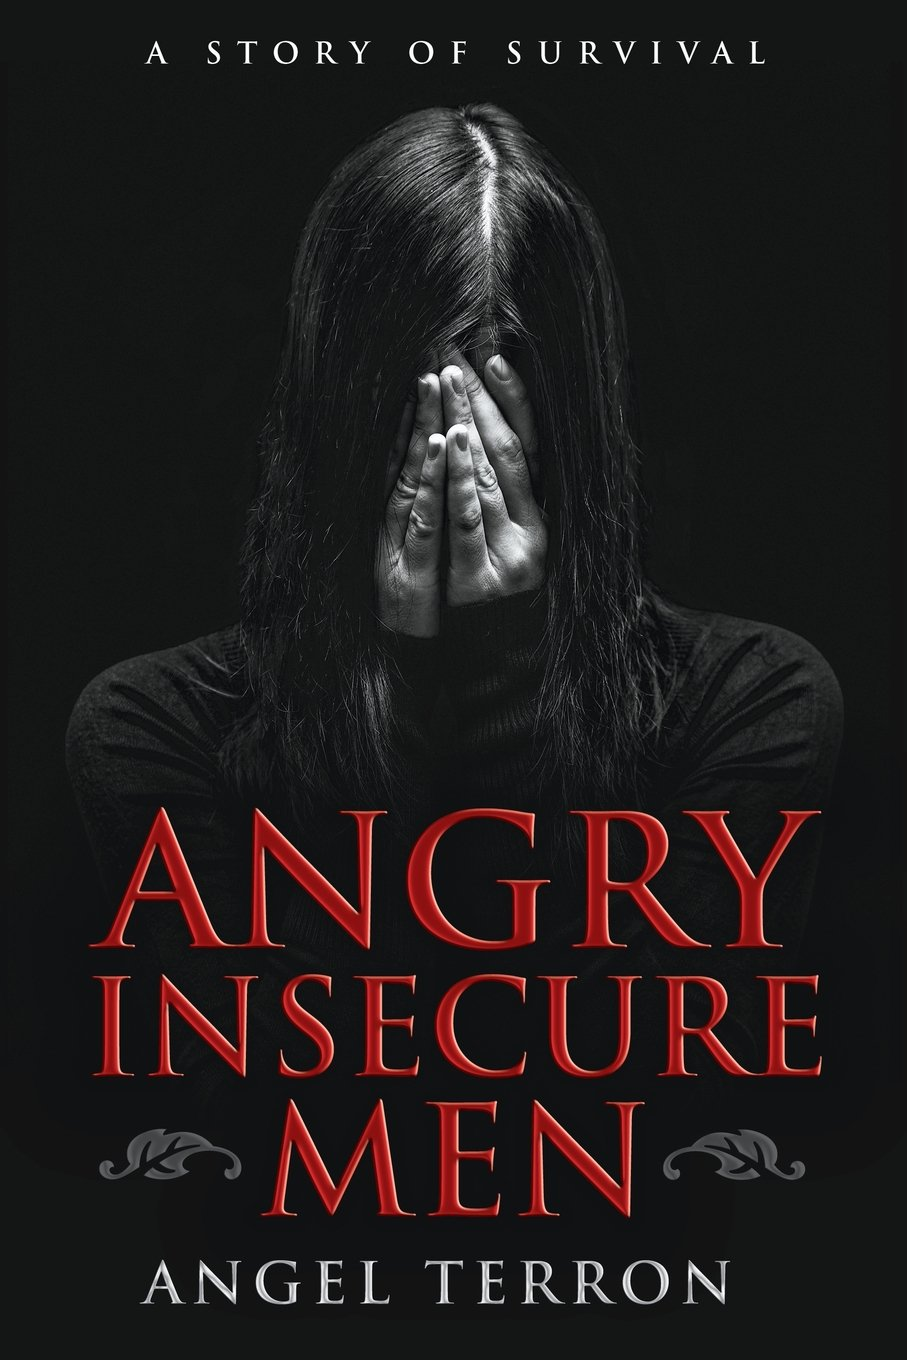 Download Angry Insecure Men 